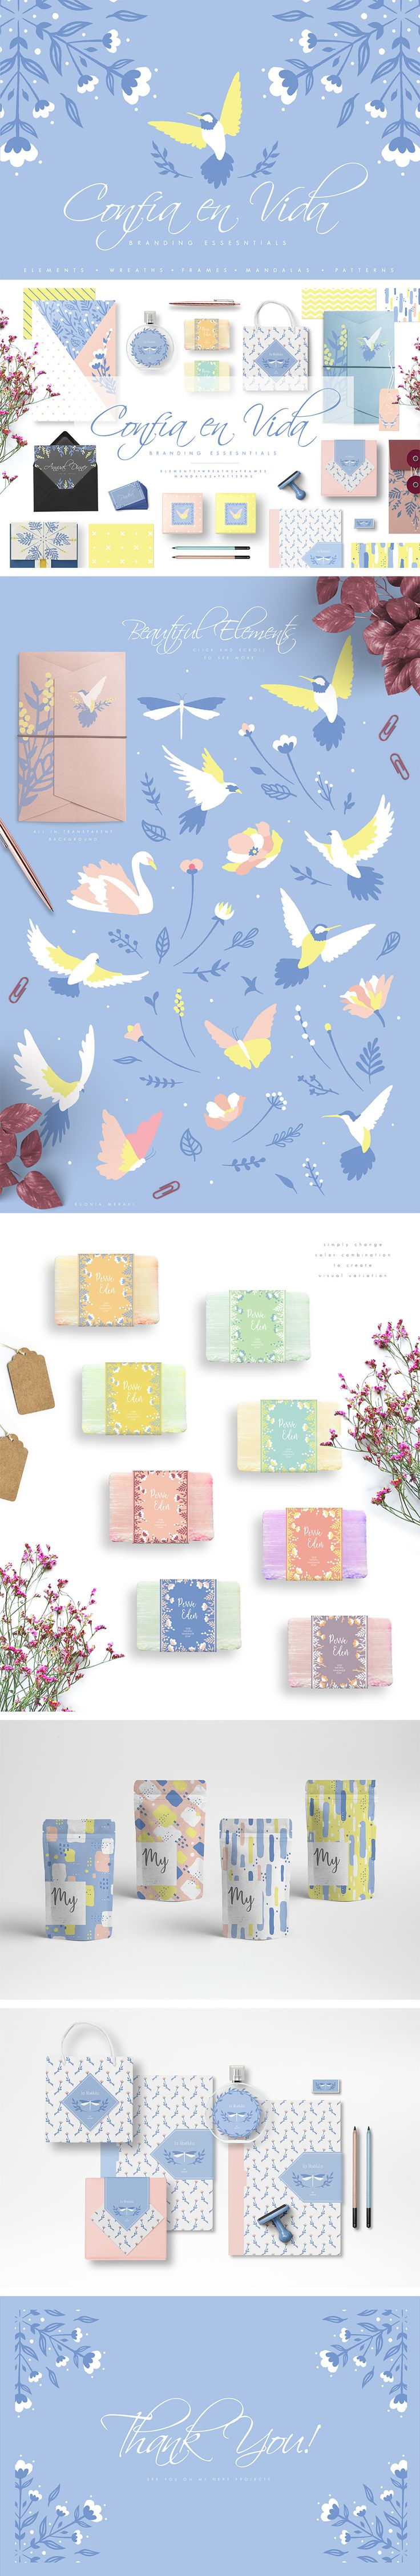 Introducing 'Confia en Vida', a branding essential kit that created to help designers develope their design professionally. Simply combine elements with frames, patterns or other items and create beautiful design which can be used as branding/letter set, stationery, wedding invitations and so much more!